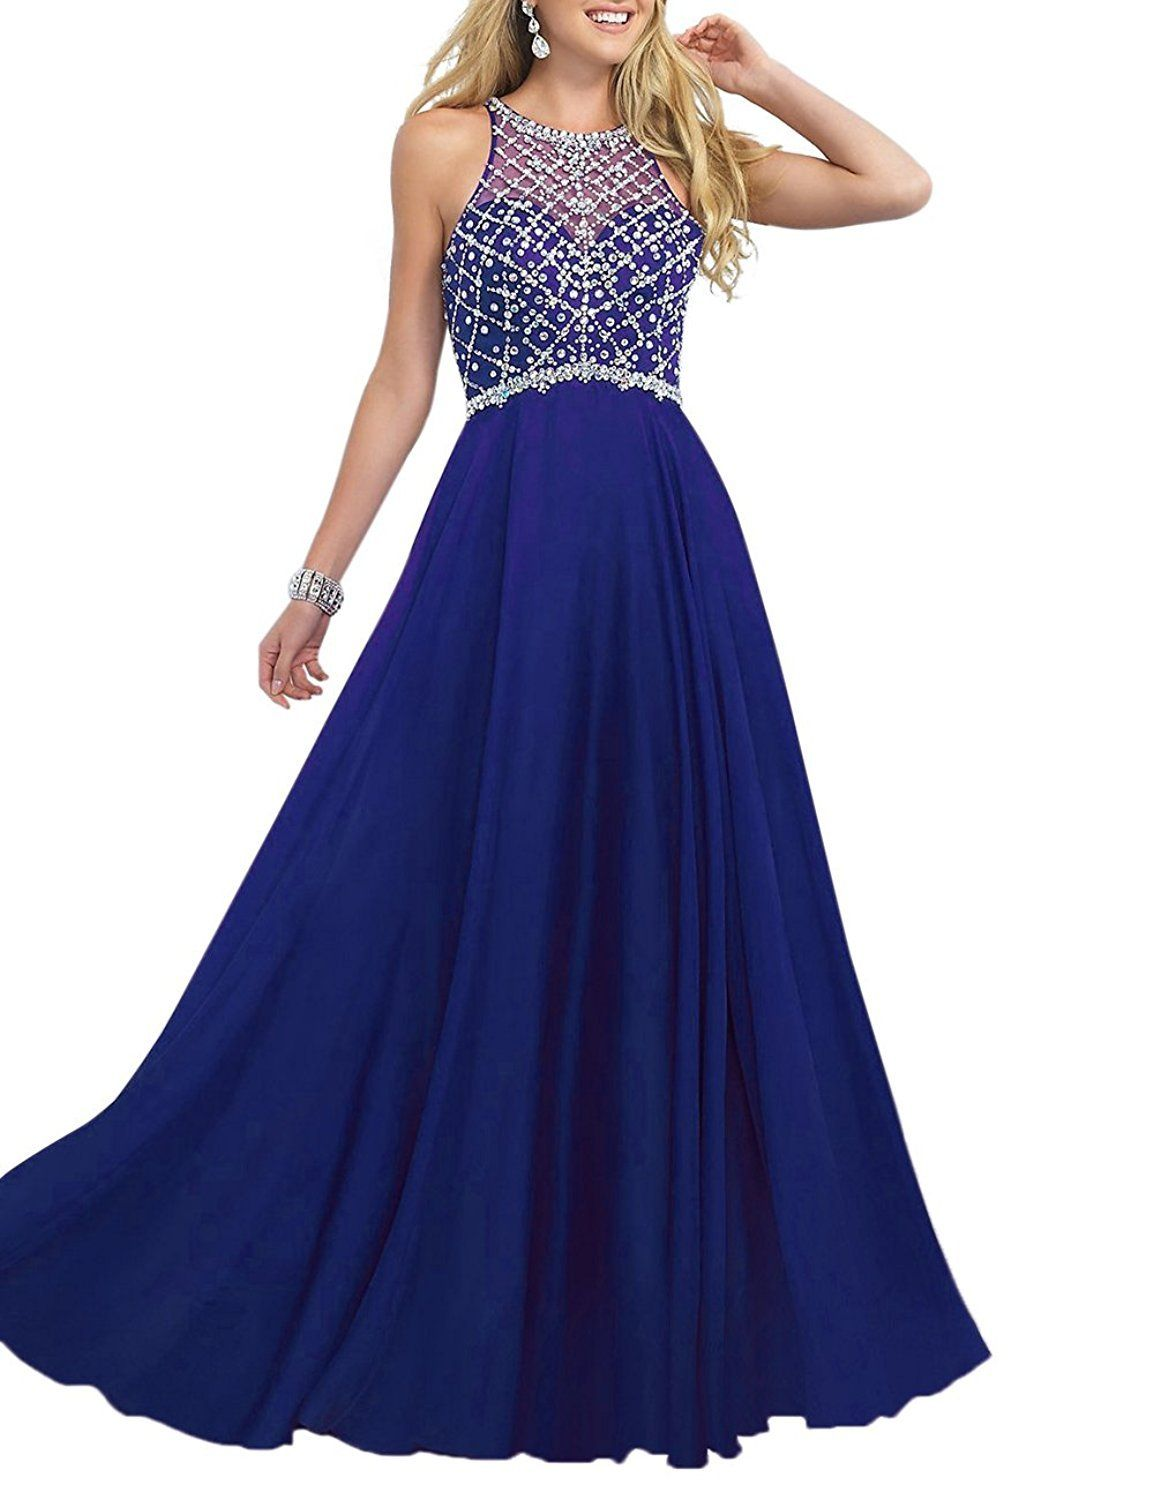 97db3ee291da2 Pettus Womens Scoop Neckline Beaded Ball Gown Formal Evening Dress Chiffon Prom  Dresses Long    For more information